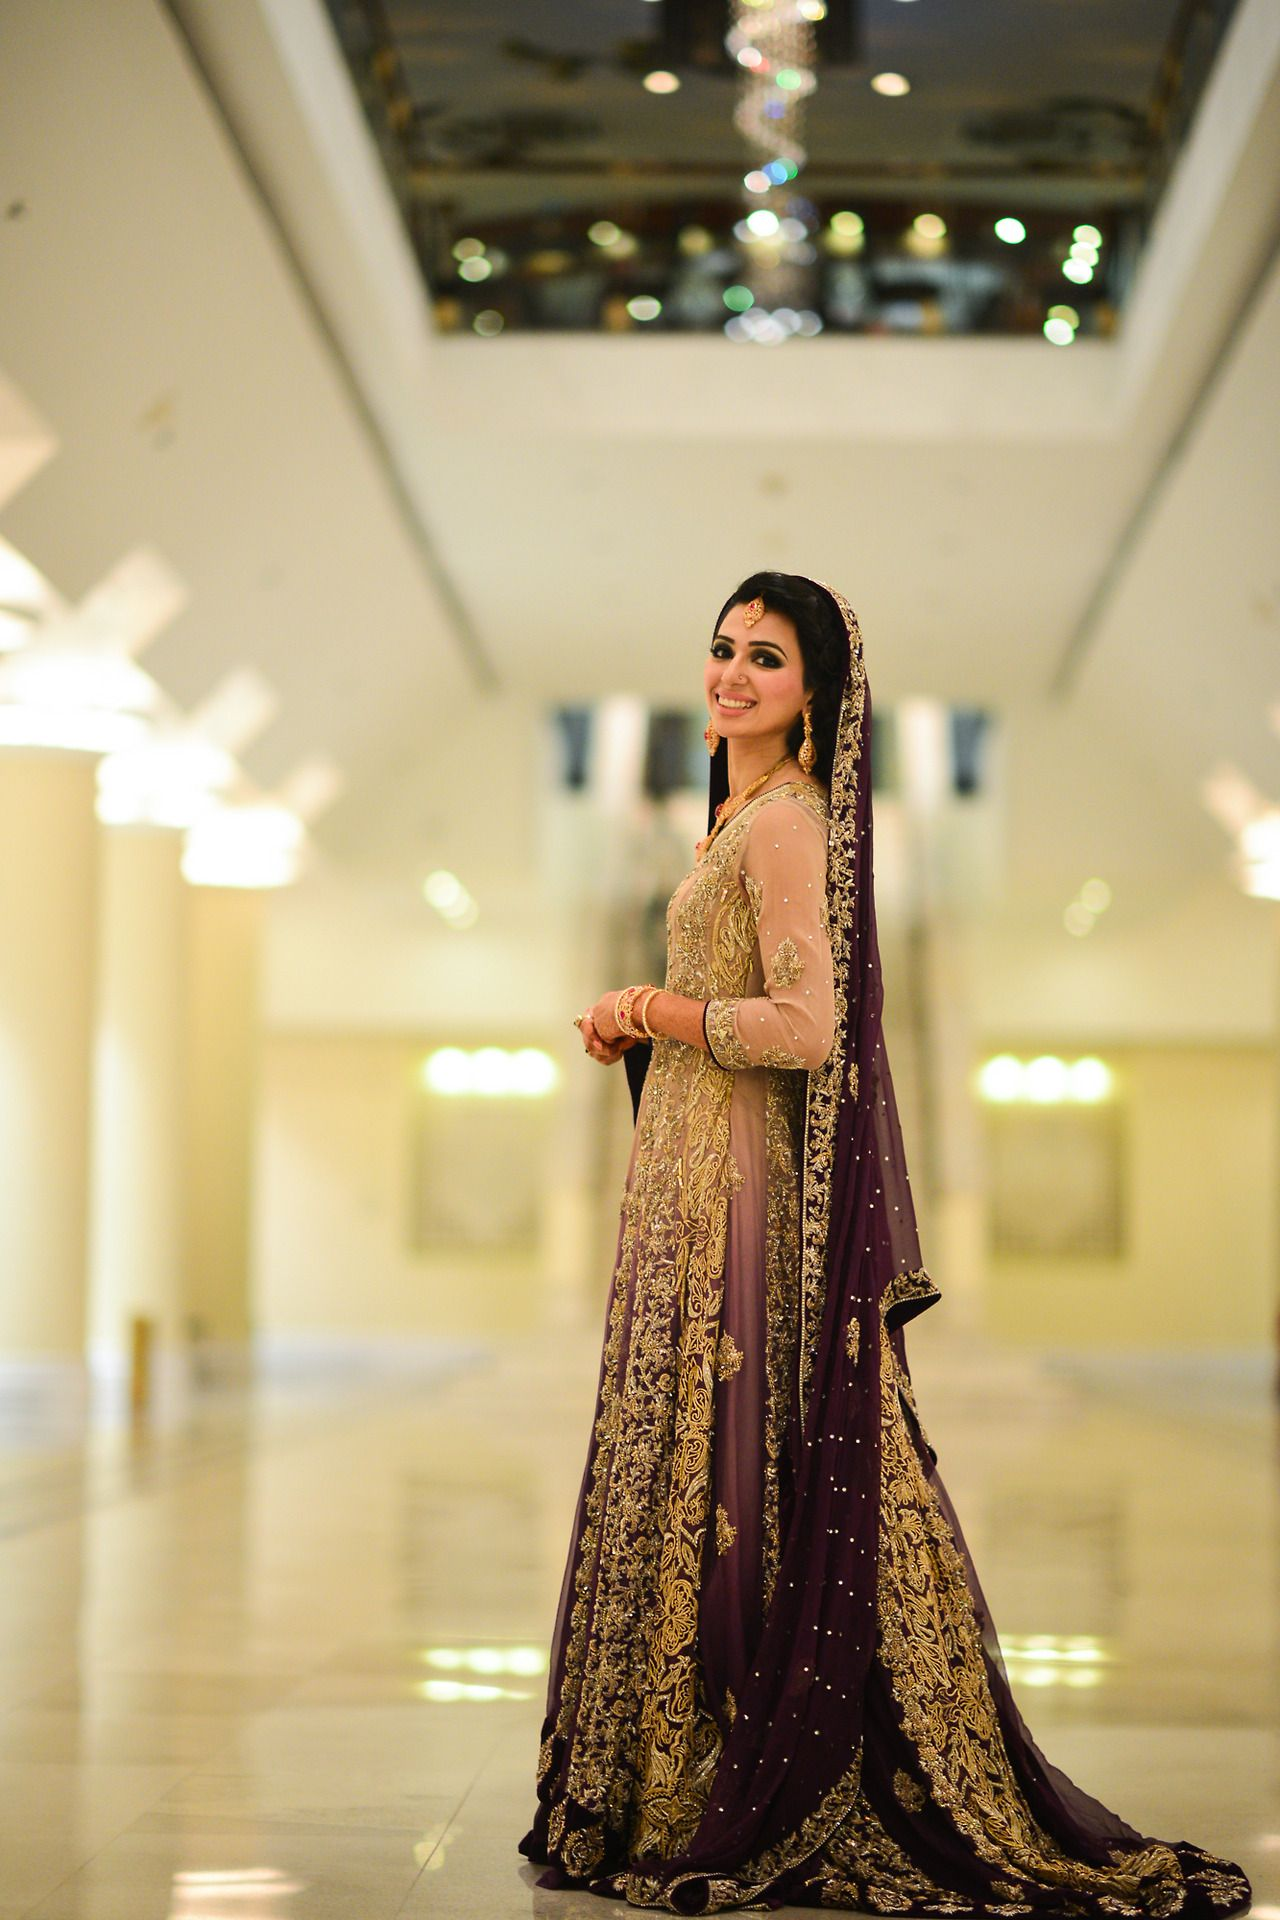 Photography: Ali Khurshid / Lighthouse | East Asian clothing ...